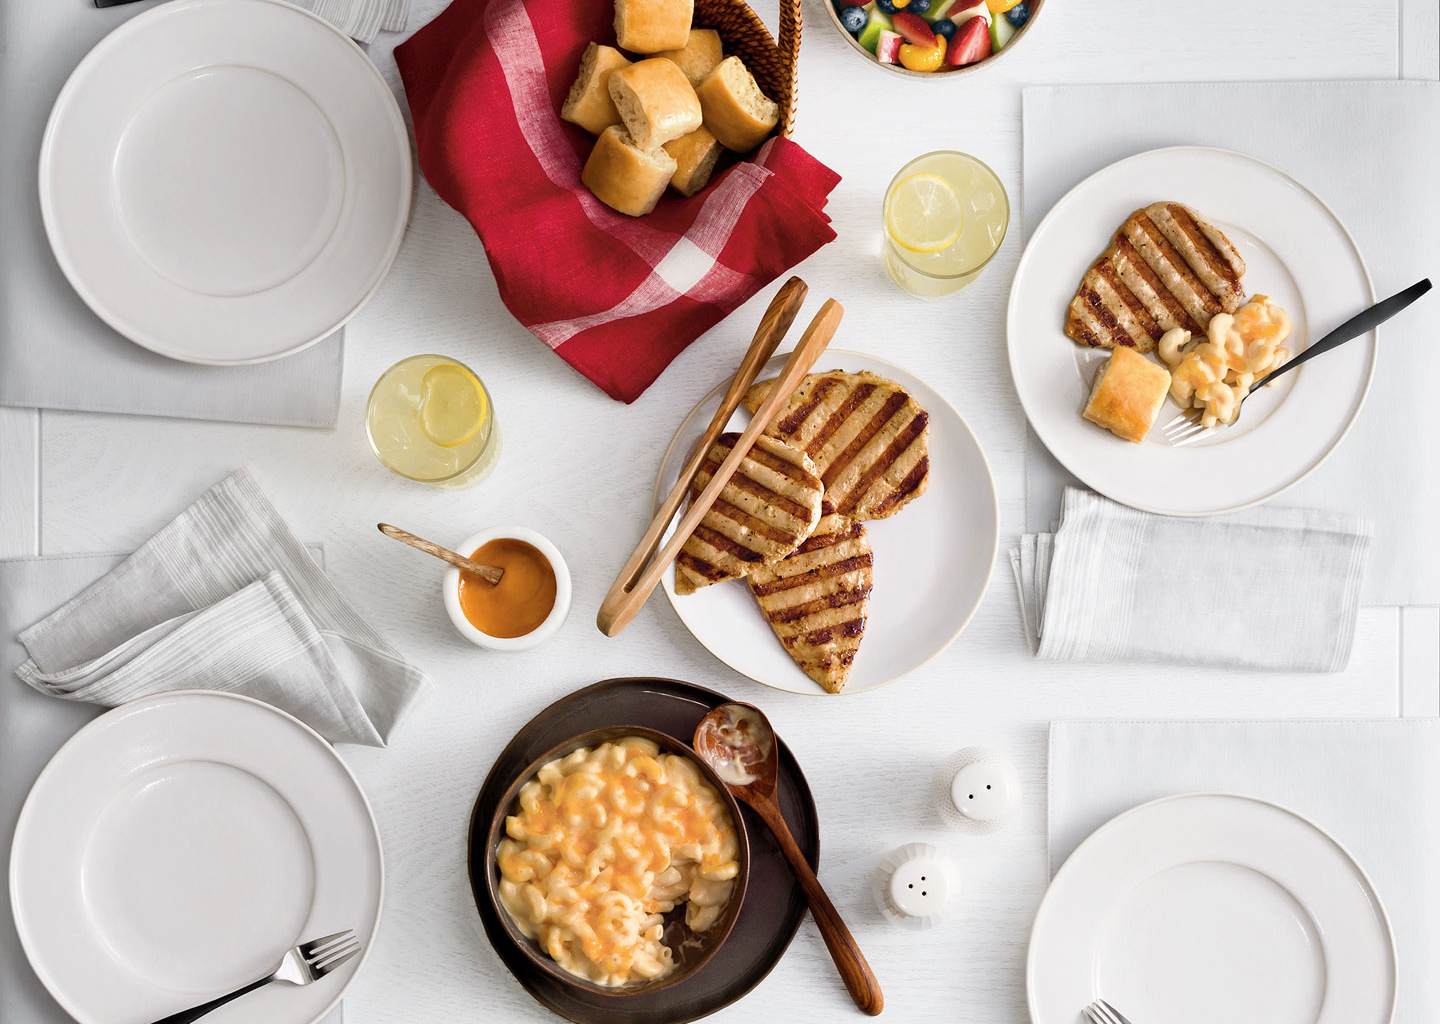 Chick-fil-A family meal.